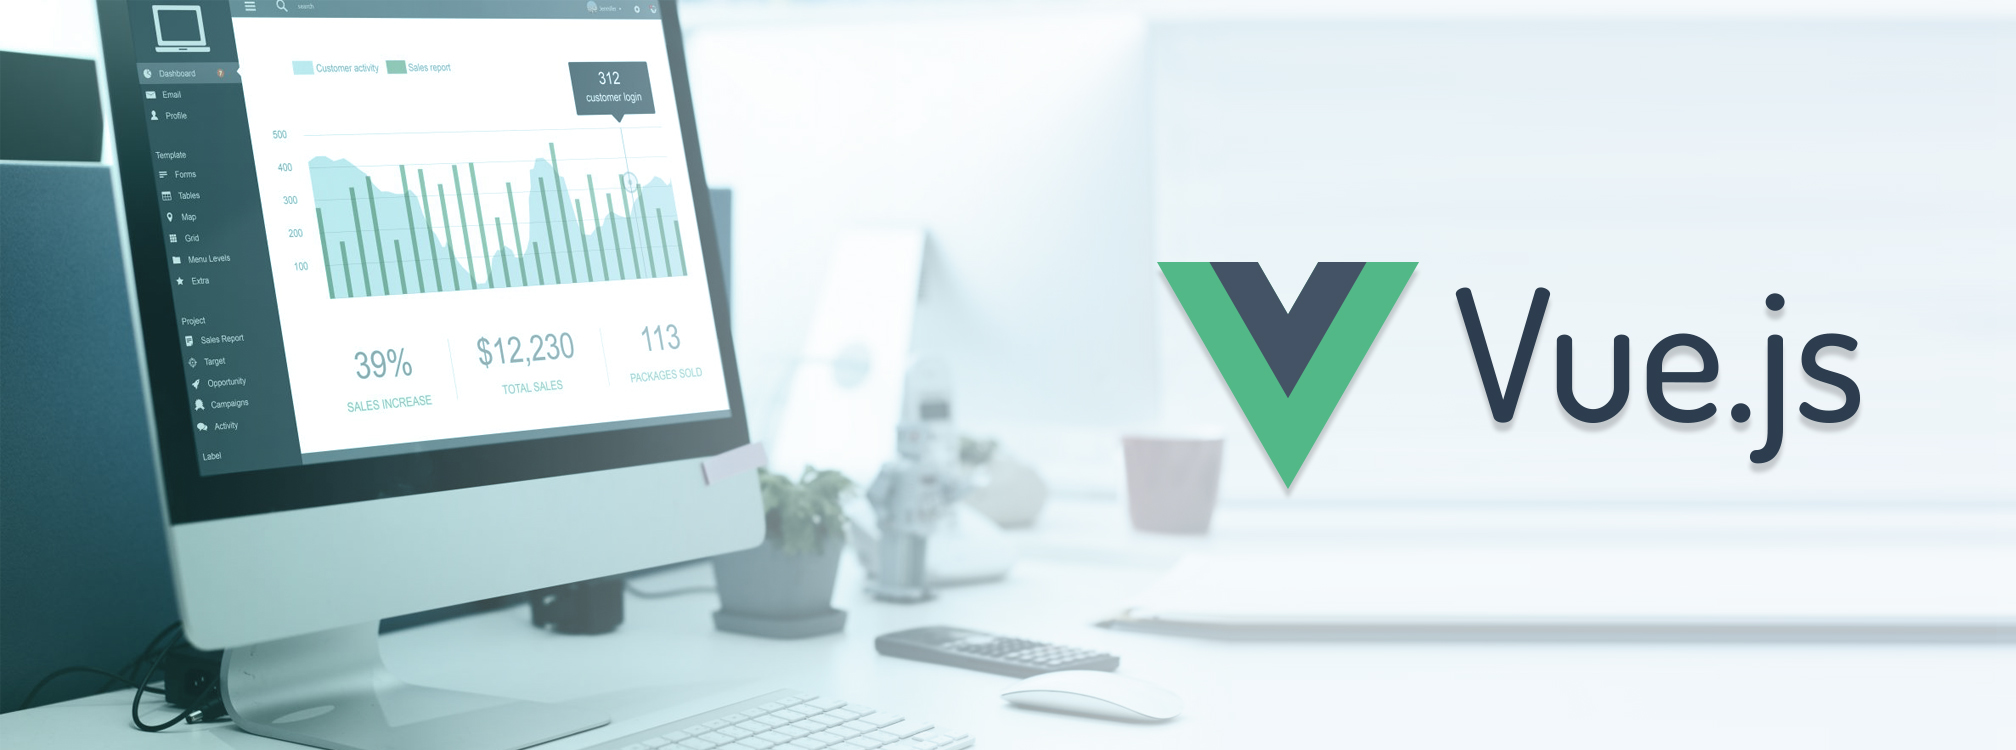 creating charts in vue js using FusionCharts